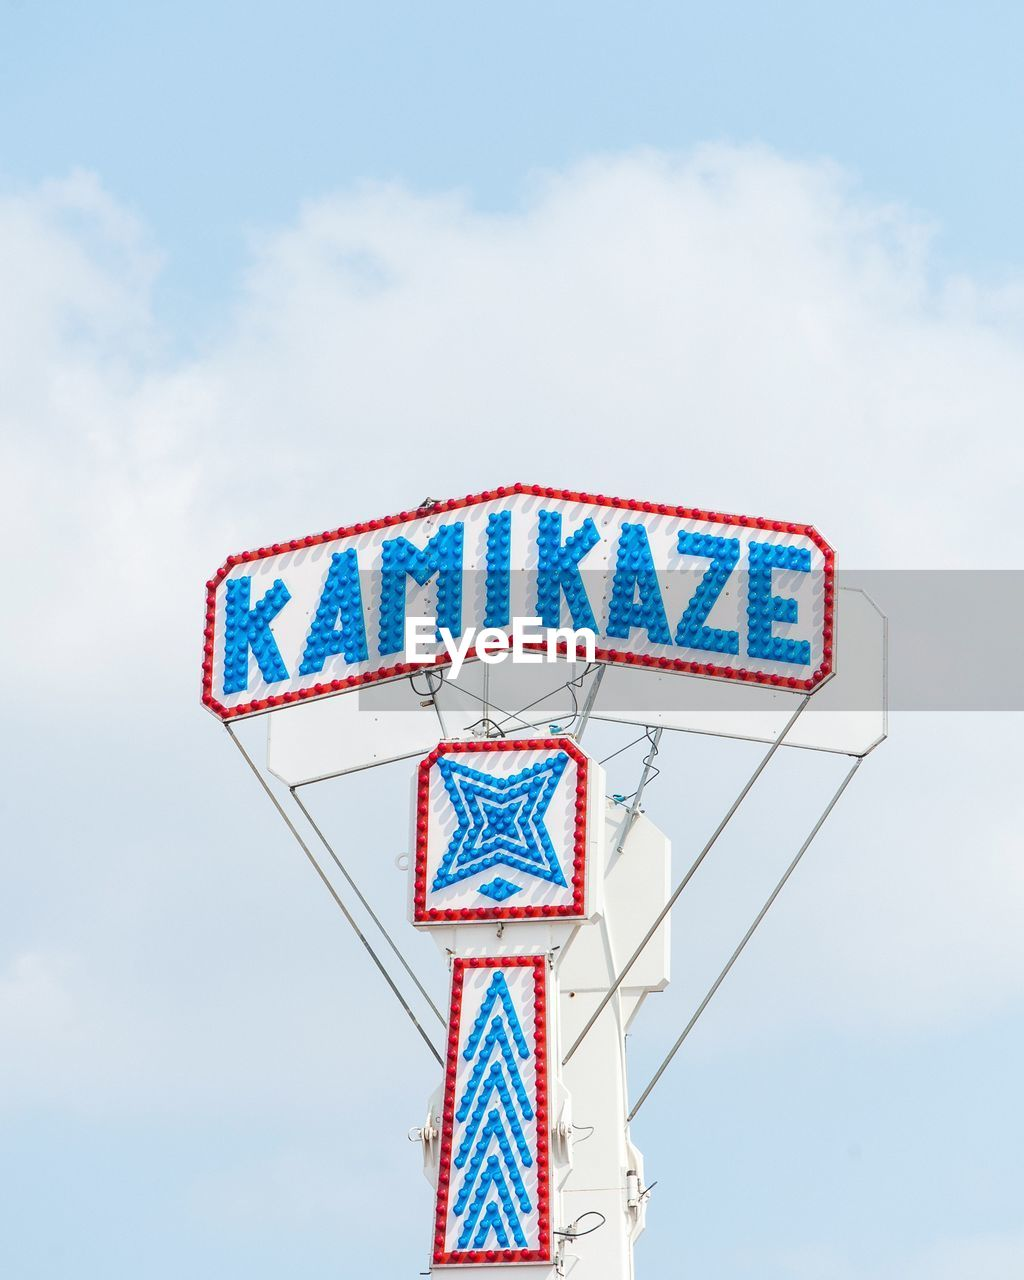 Low angle view of text on amusement park ride